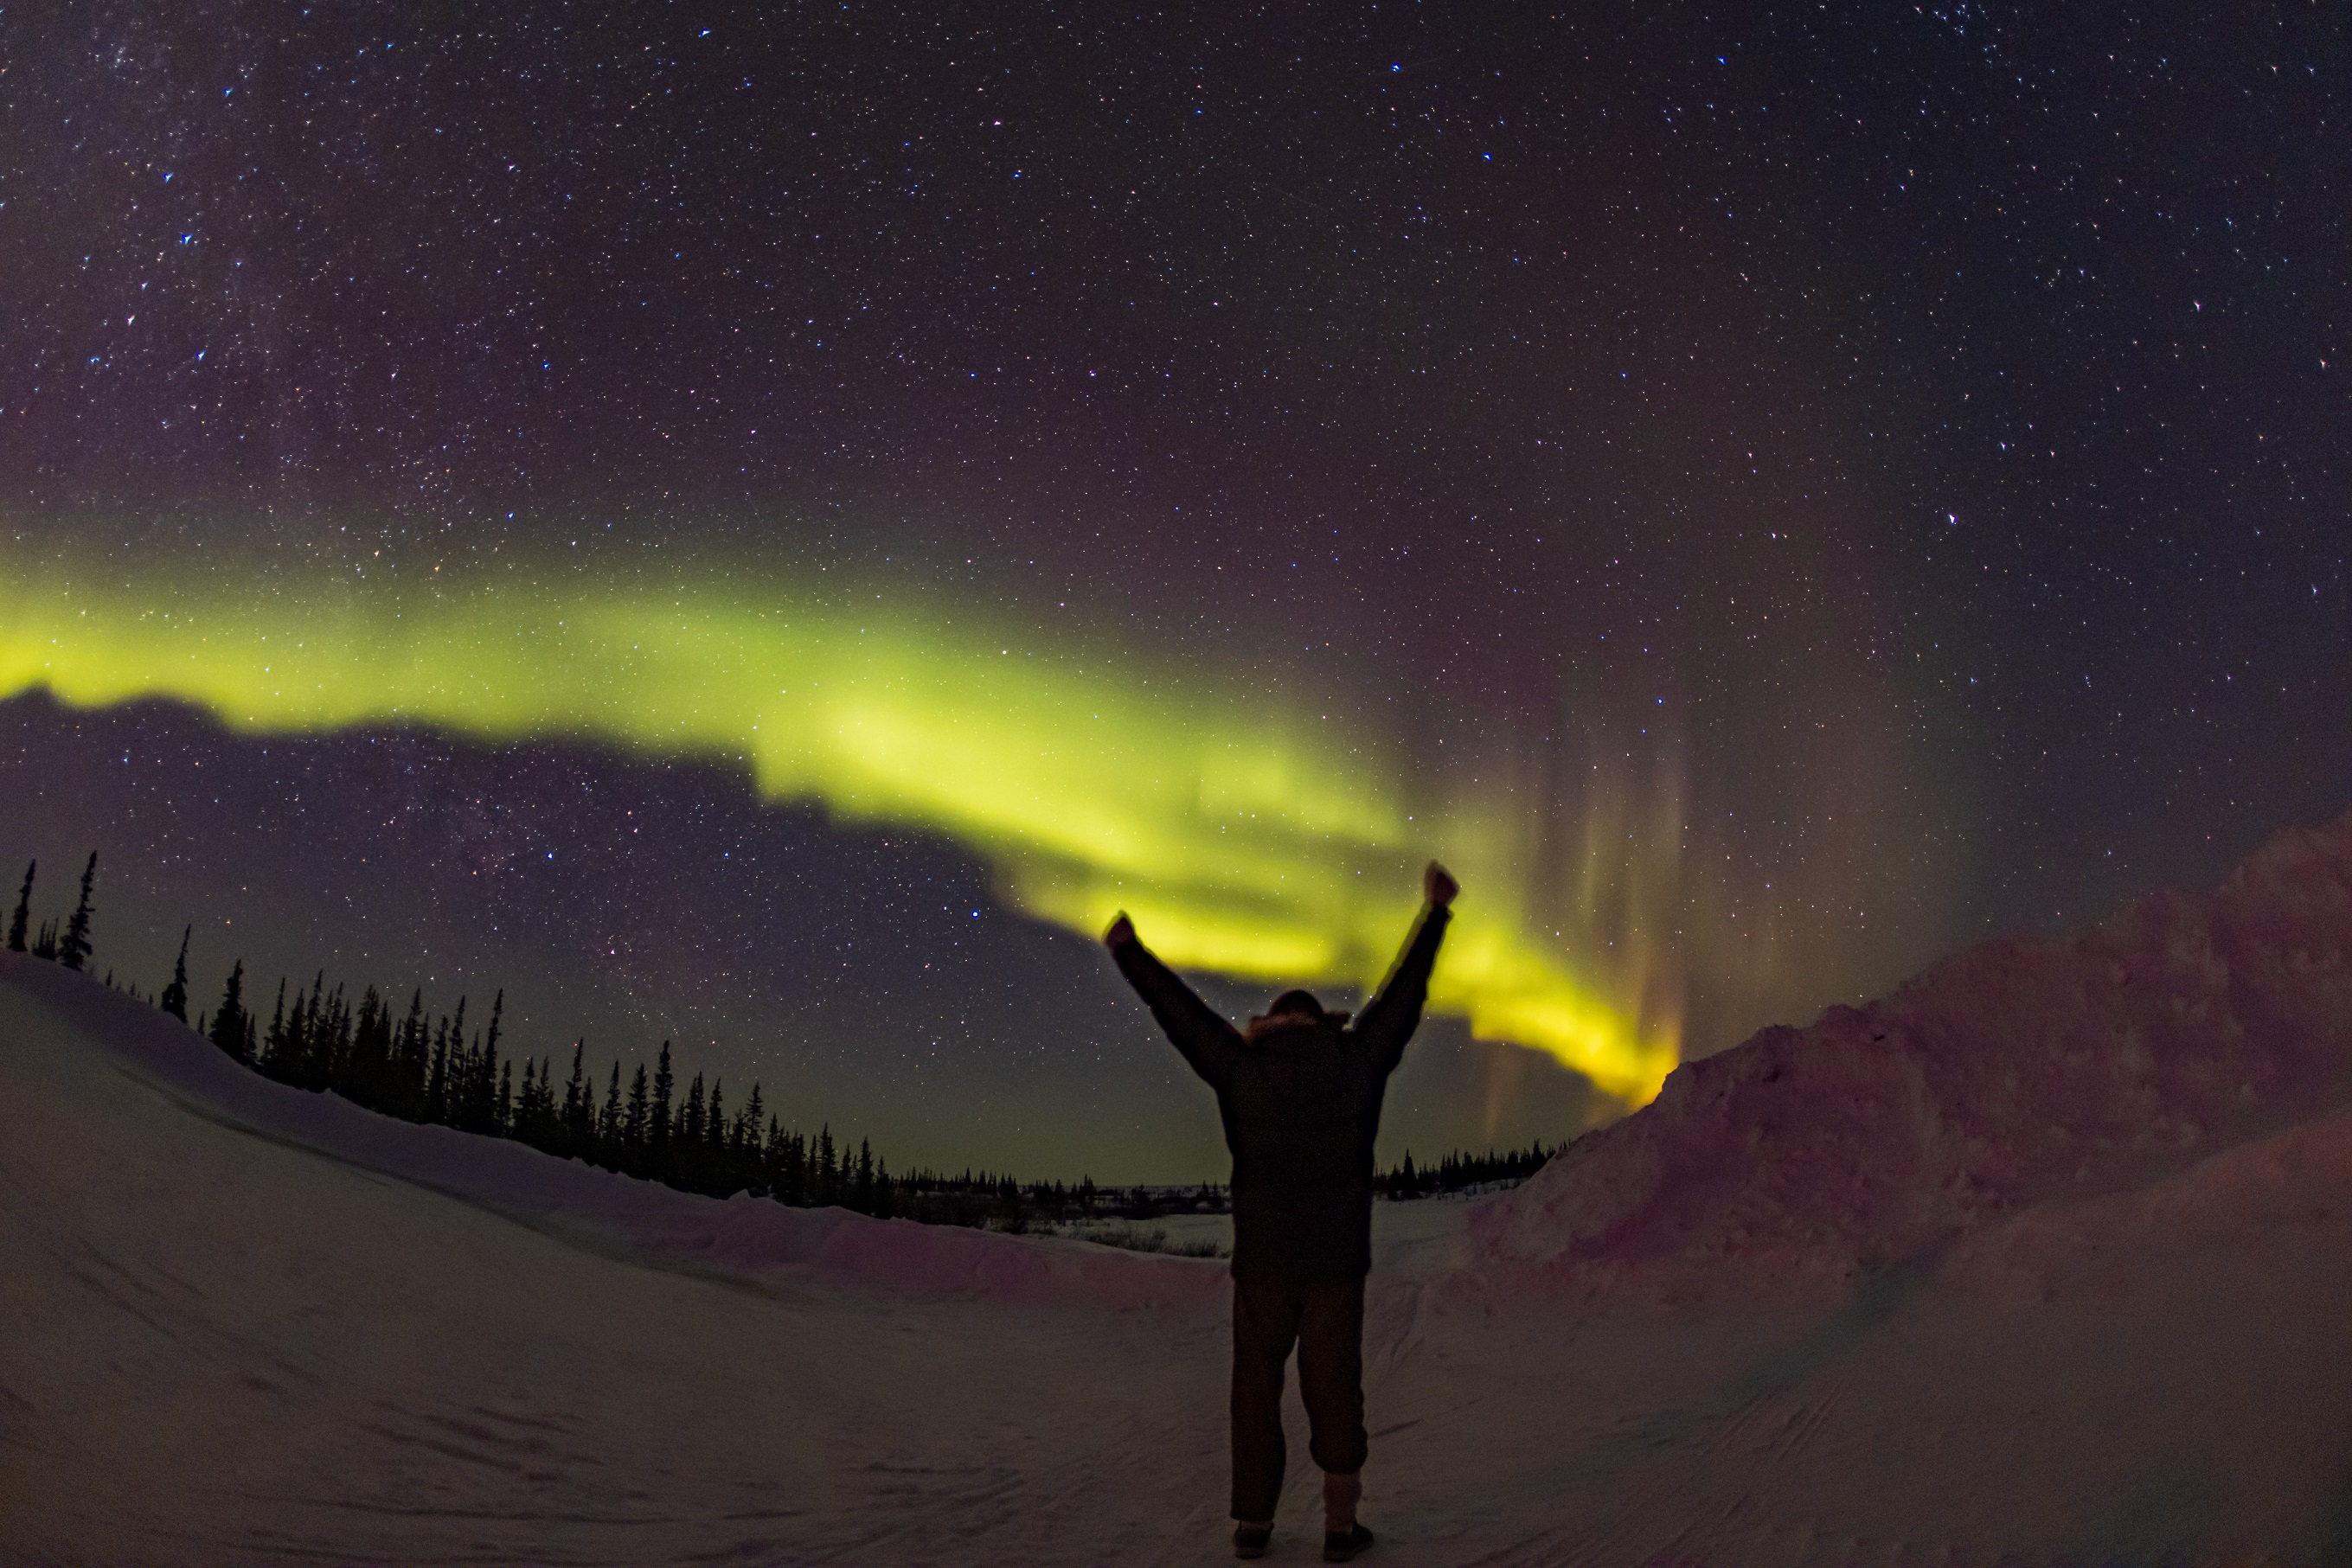 Ben standing in front of the northern lights and a star speckled sky. Churchill Manitoba, Canada